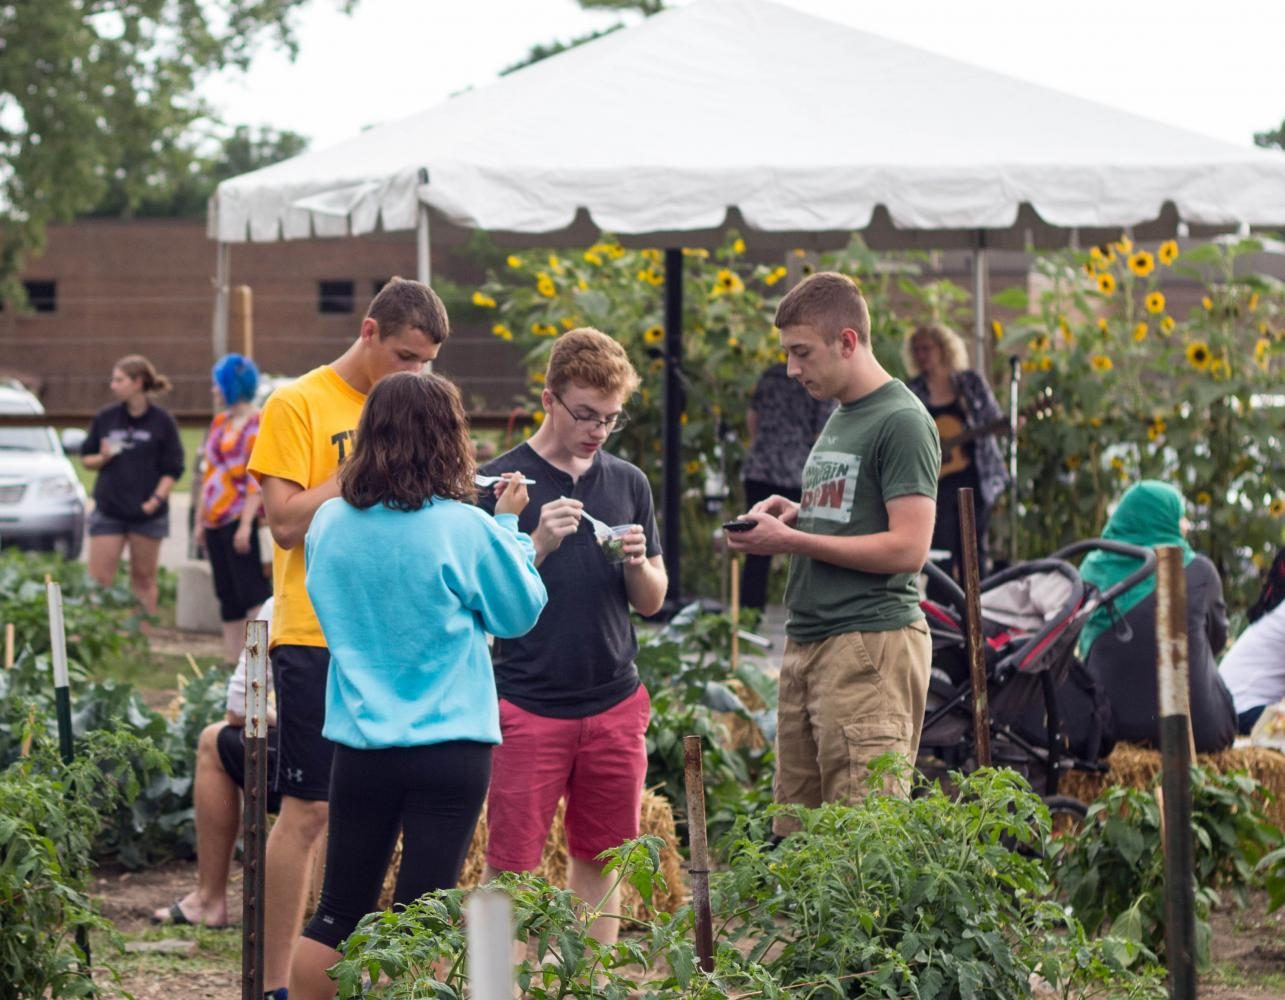 Students+gathered+at+Panther+Plots+last+Thursday+for+the+fifth+annual+Harvest+Festival%2C+where+they+feasted+on+vegetables+from+the+garden+and+enjoyed+live+music.